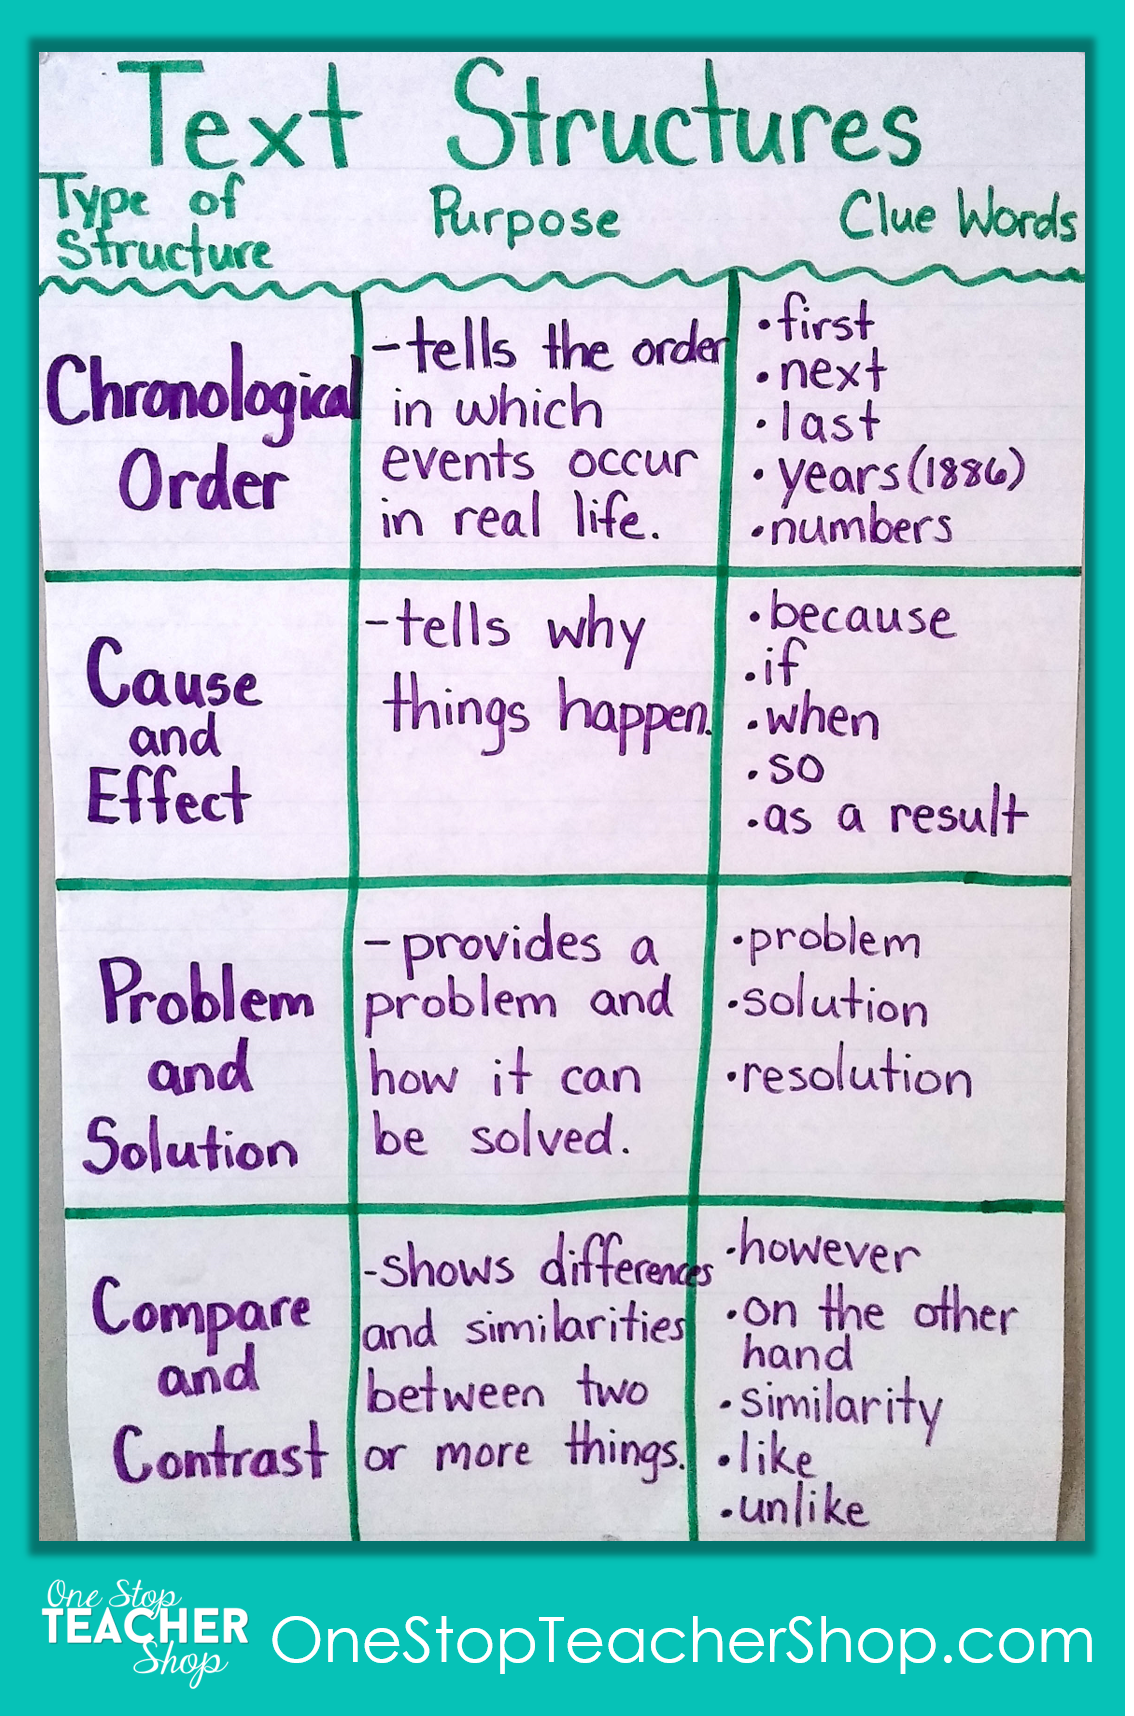 Nonfiction Text Structure Anchor Chart - Check out my collection of anchor charts for math, reading, writing, and grammar. I love anchor charts even though I'm not so great at making them! Also, get some tips for using anchor charts effectively in your classroom.